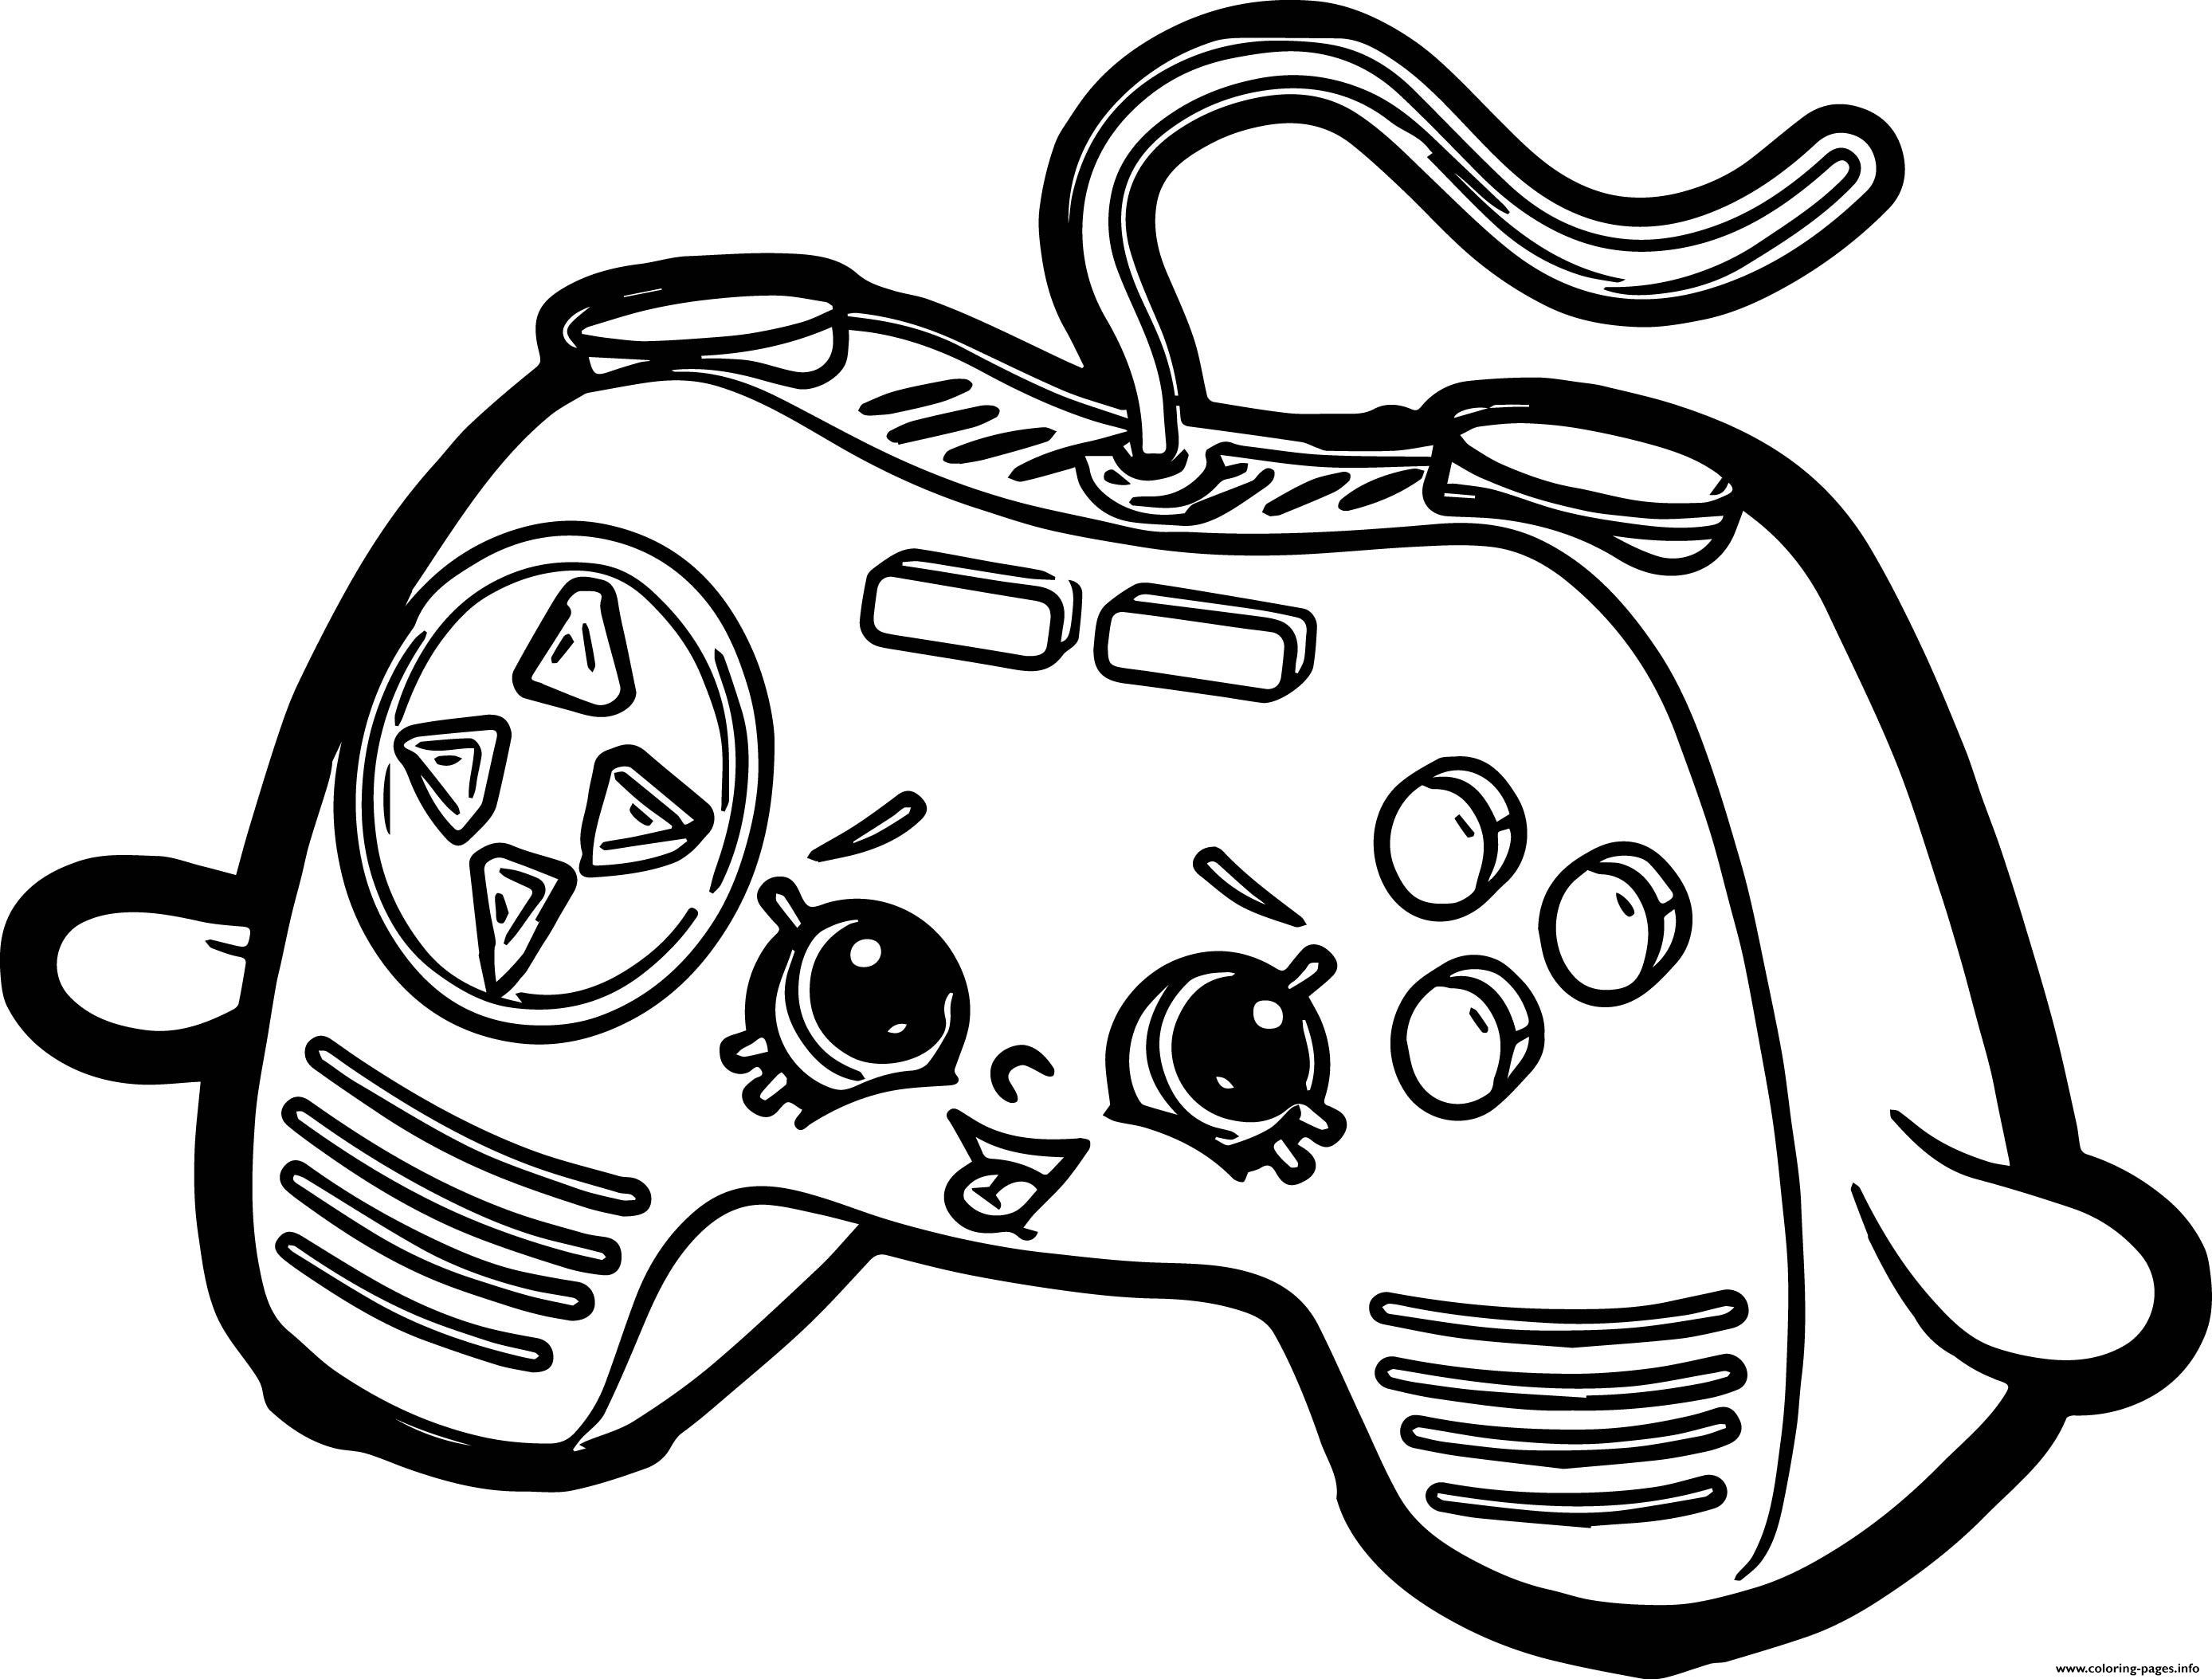 Coloring Page Xbox Controller Luxury Sheet Brilliant Video Game to Print Of Xbox Coloring Pages Baskanai Collection